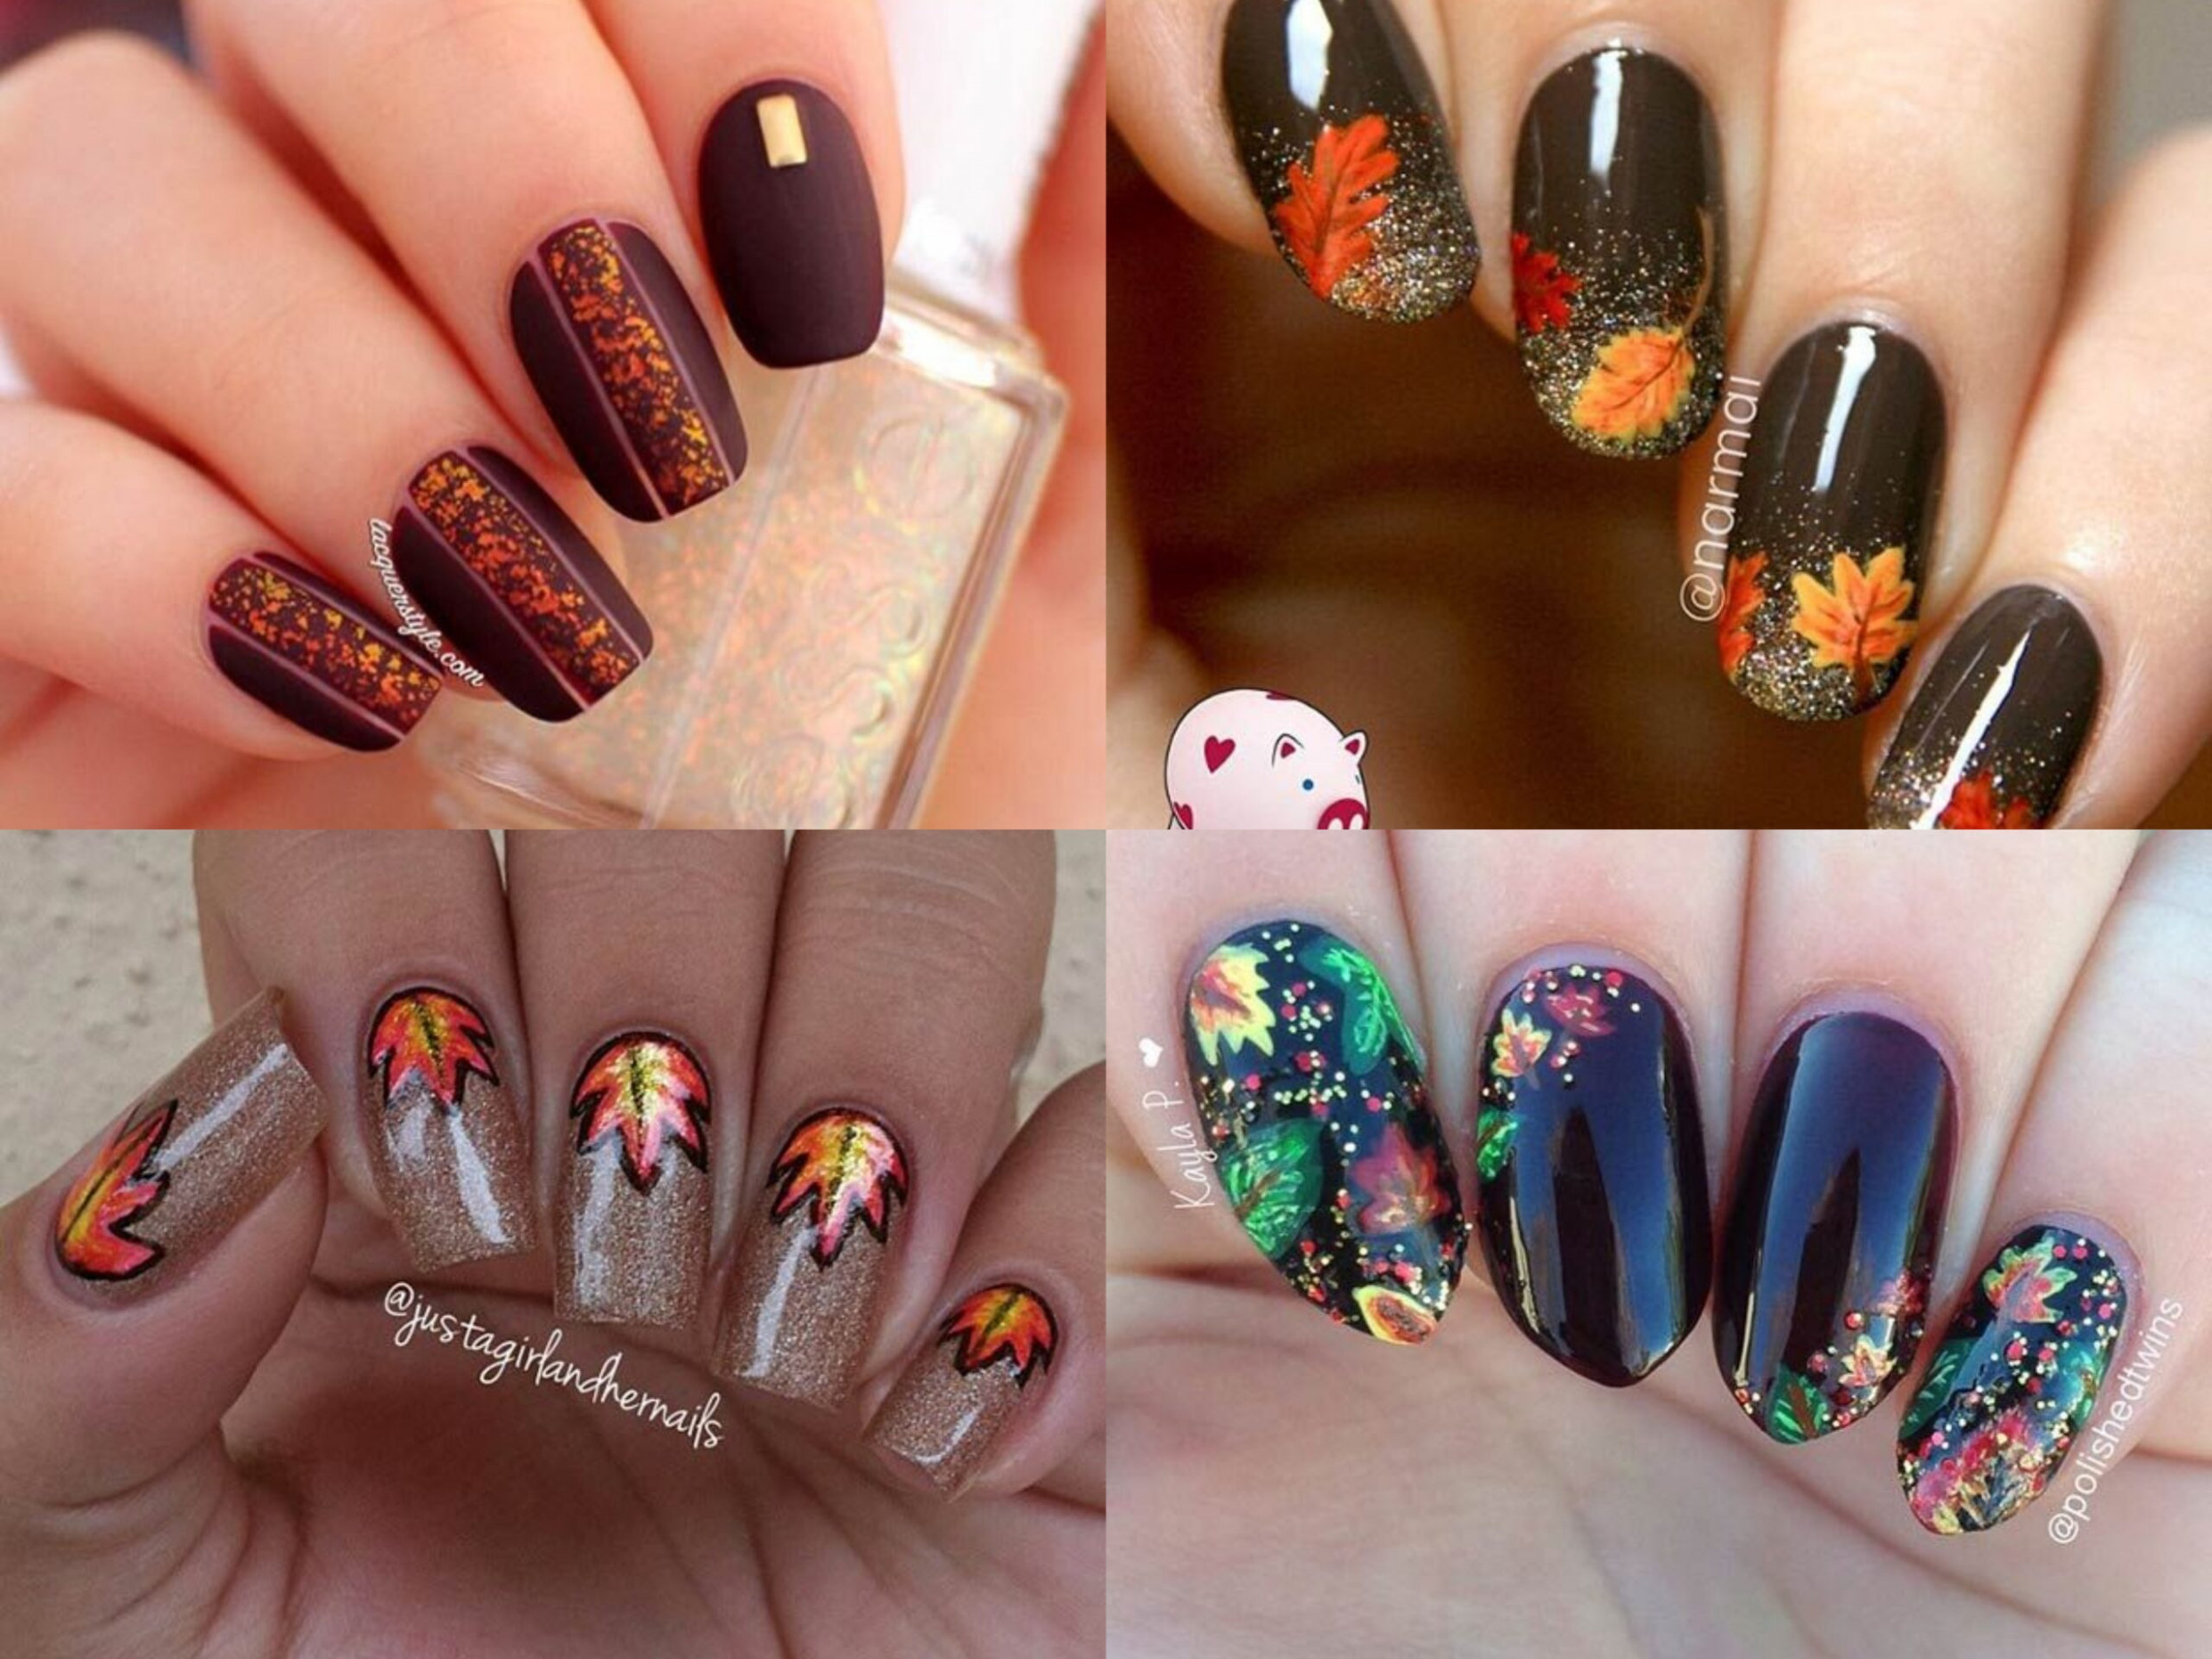 10 Cool Nail Designs to Try This Fall  Top Fashion News